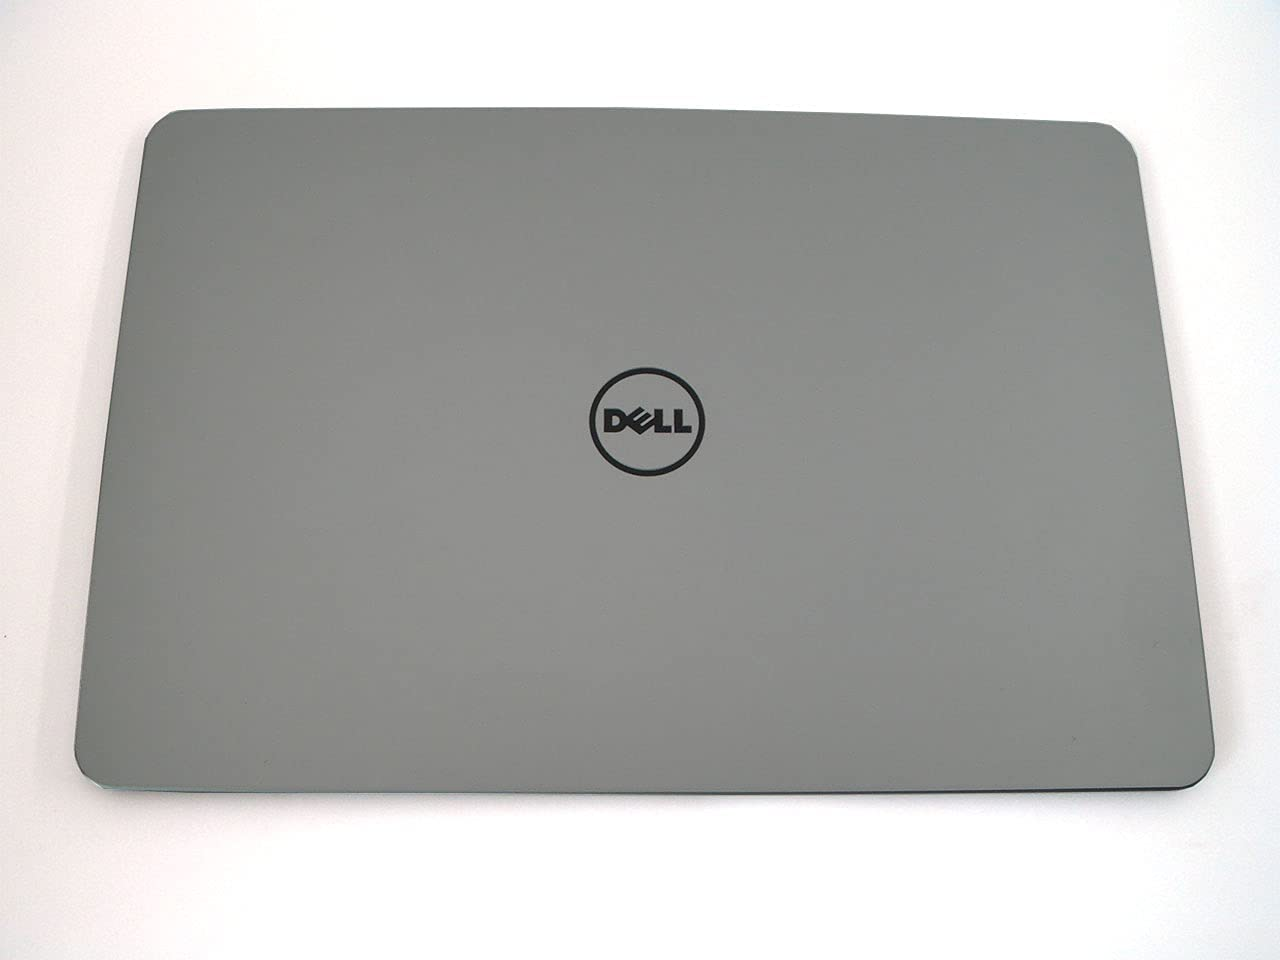 Genuine Parts for Dell Inspiron 15 7537 15 inch top lid LCD Back Cover 07K2ND for Touch Screen